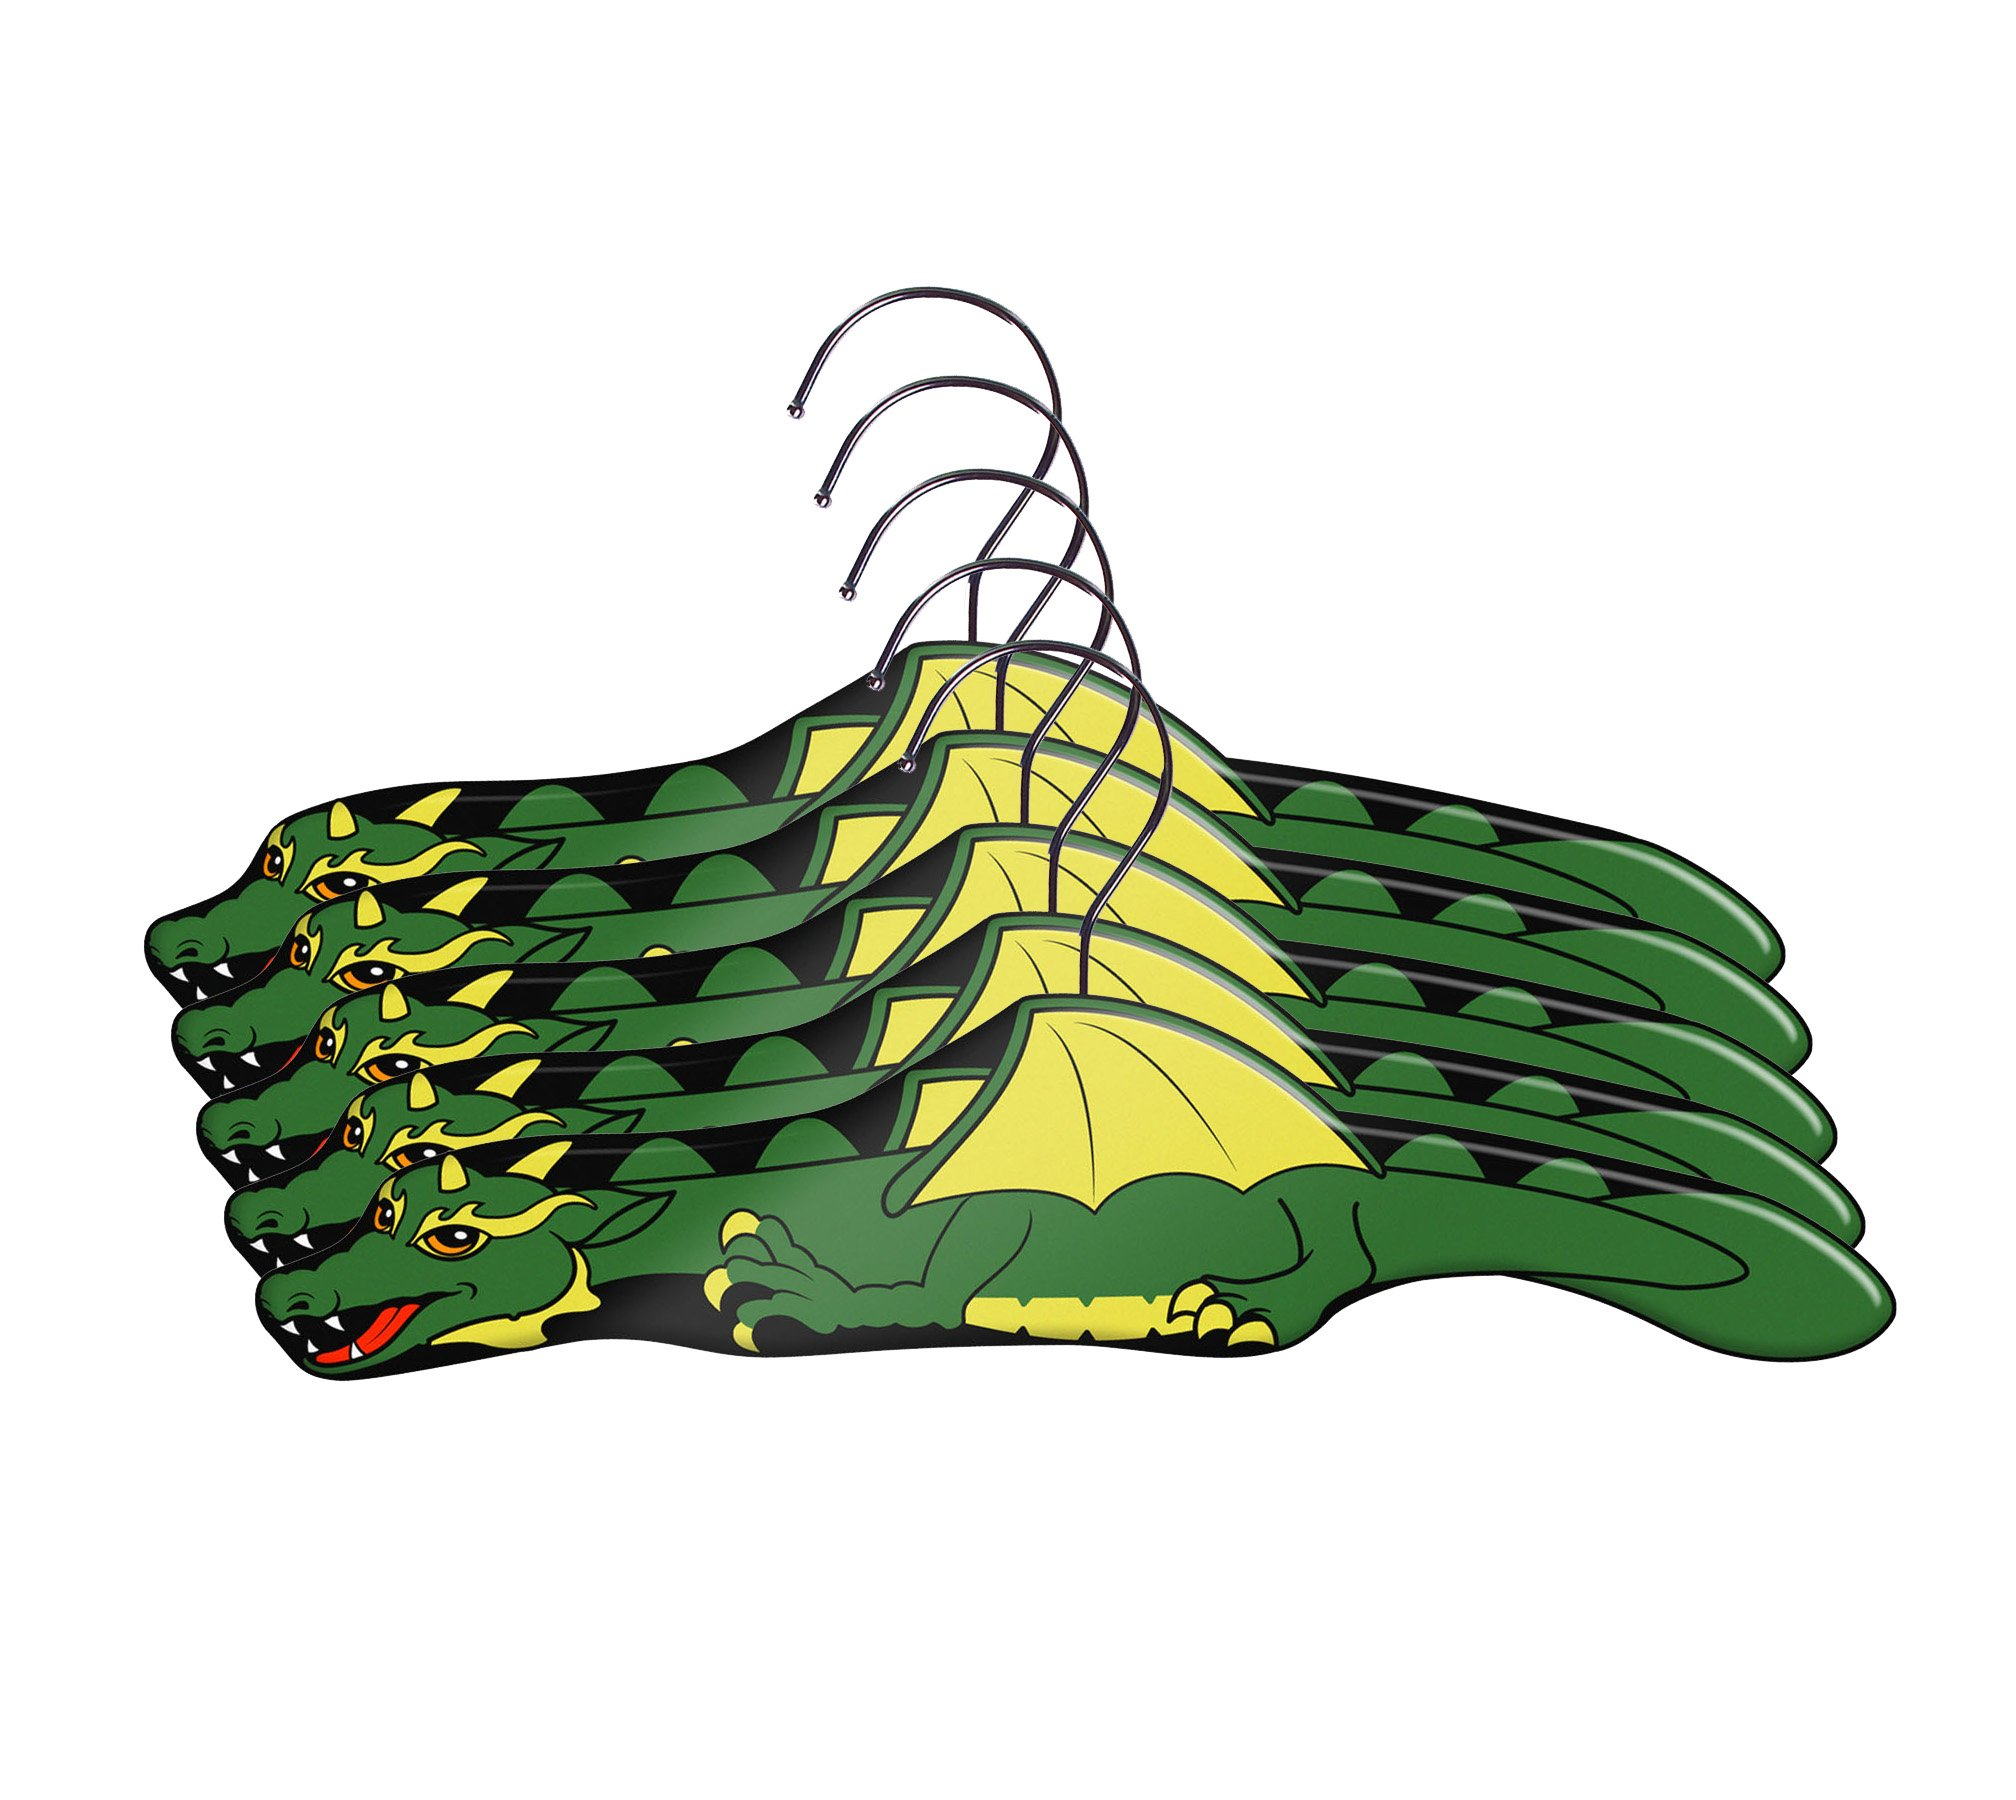 Kidorable Boys' Dragon Knight Hangers, Green/Grey/Black, One Size, Set of 5